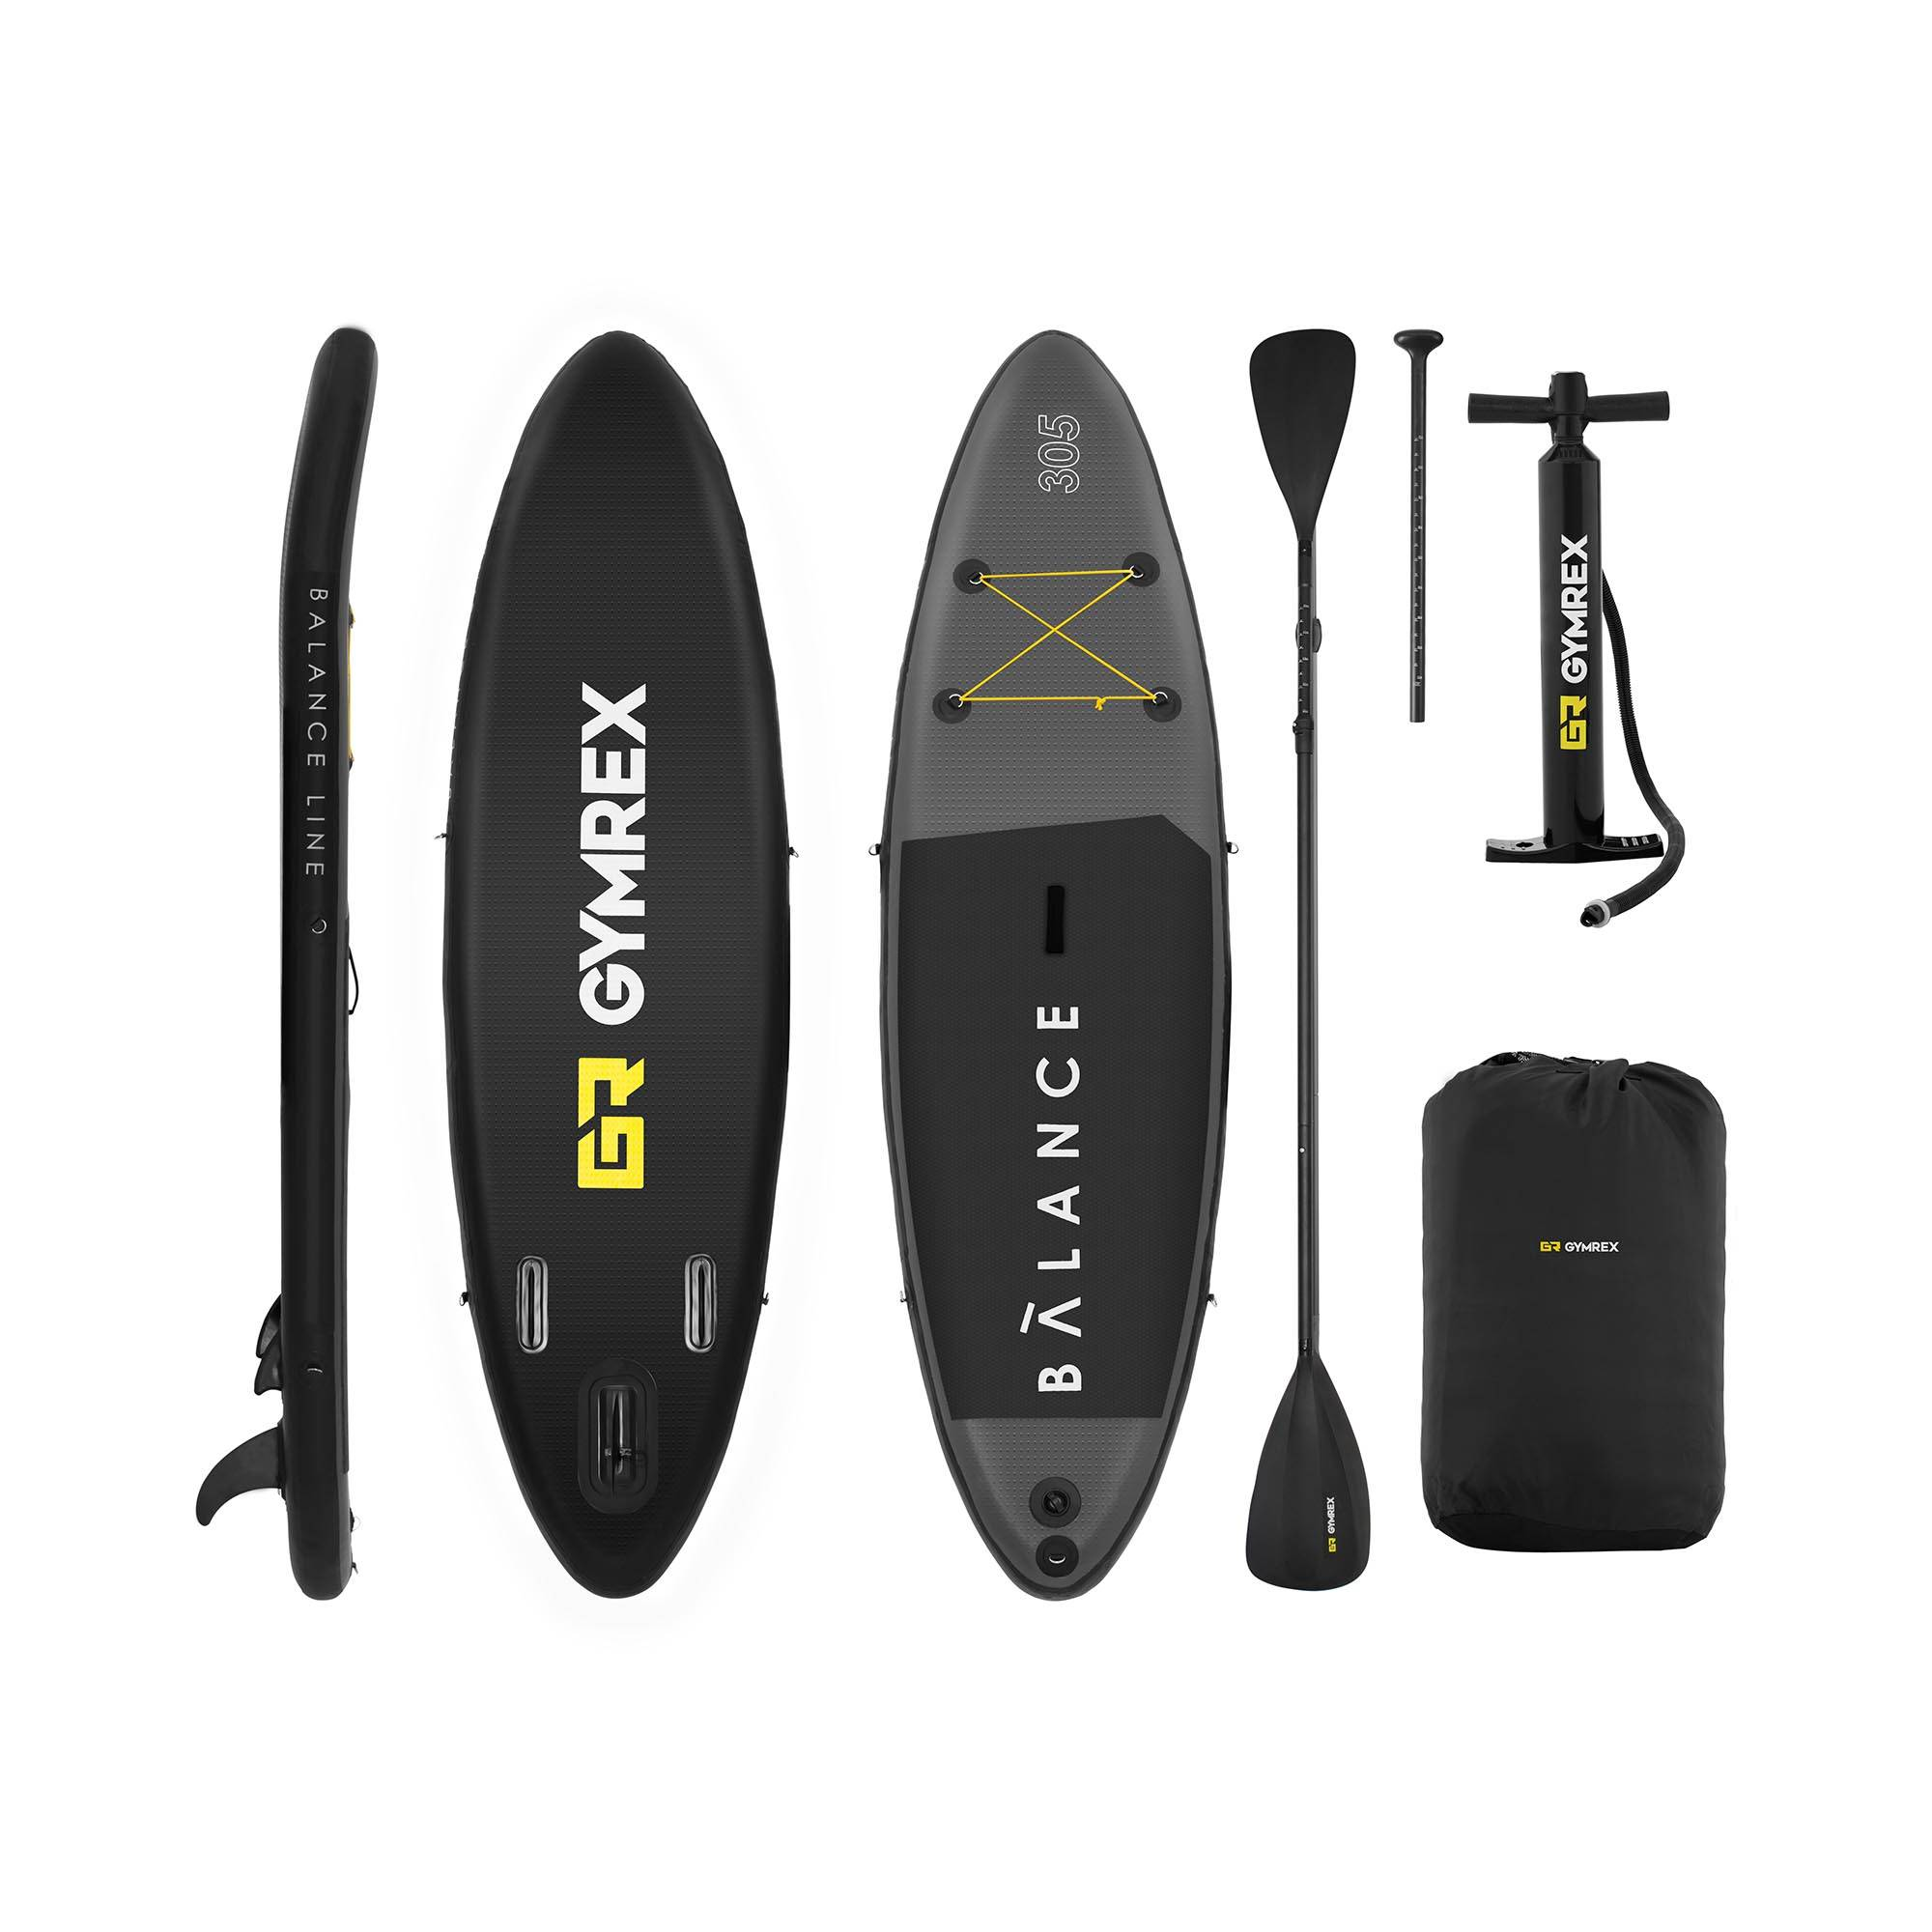 Gymrex Stand up paddle gonflable - 135 kg - 305 x 79 x 15 cm GR-SPB305